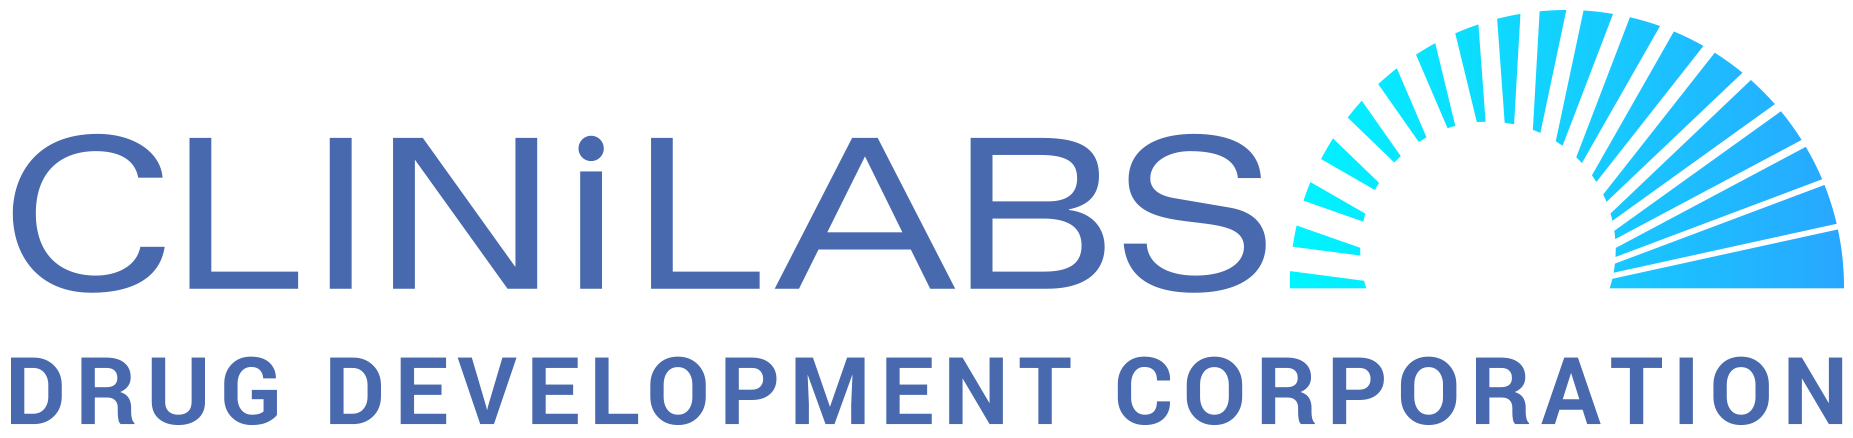 Clinilabs Drug Development Corporation